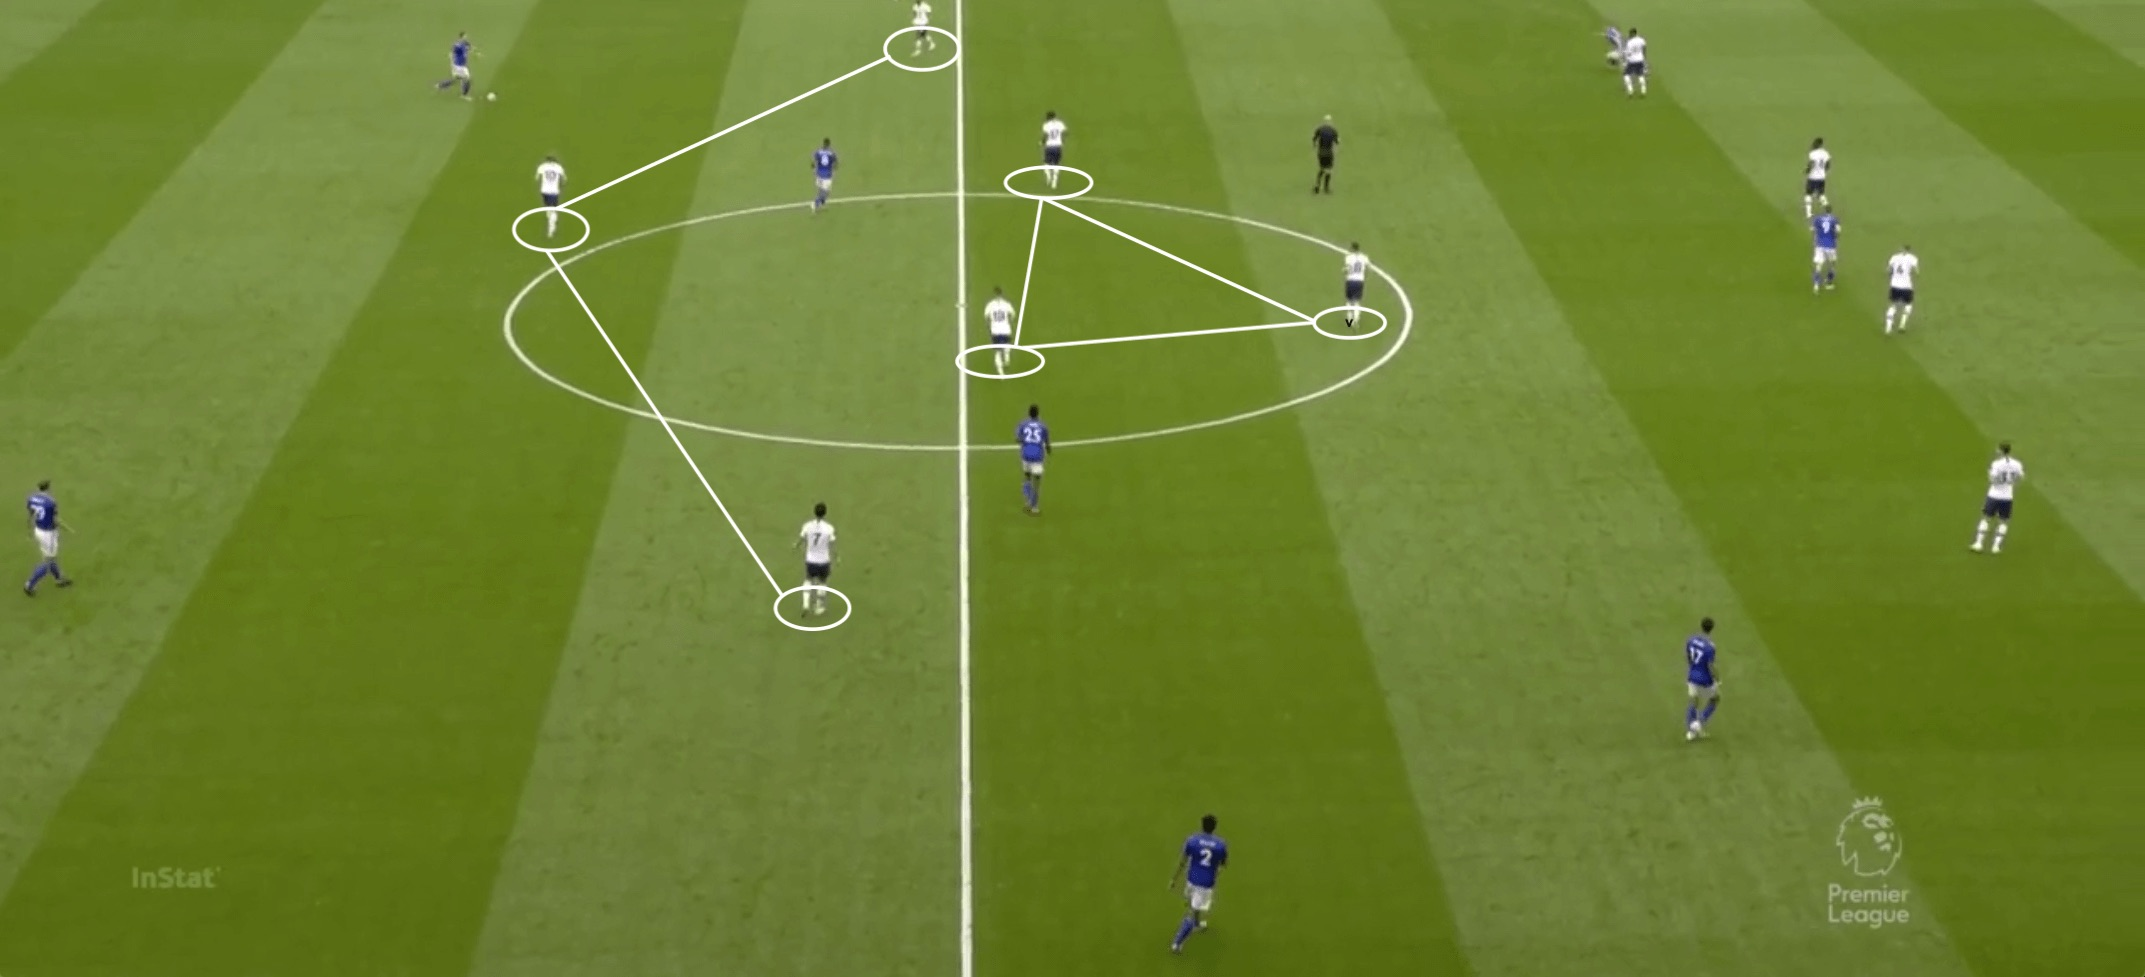 Premier League 2019/20: Tottenham vs Leicester - tactical analysis tactics